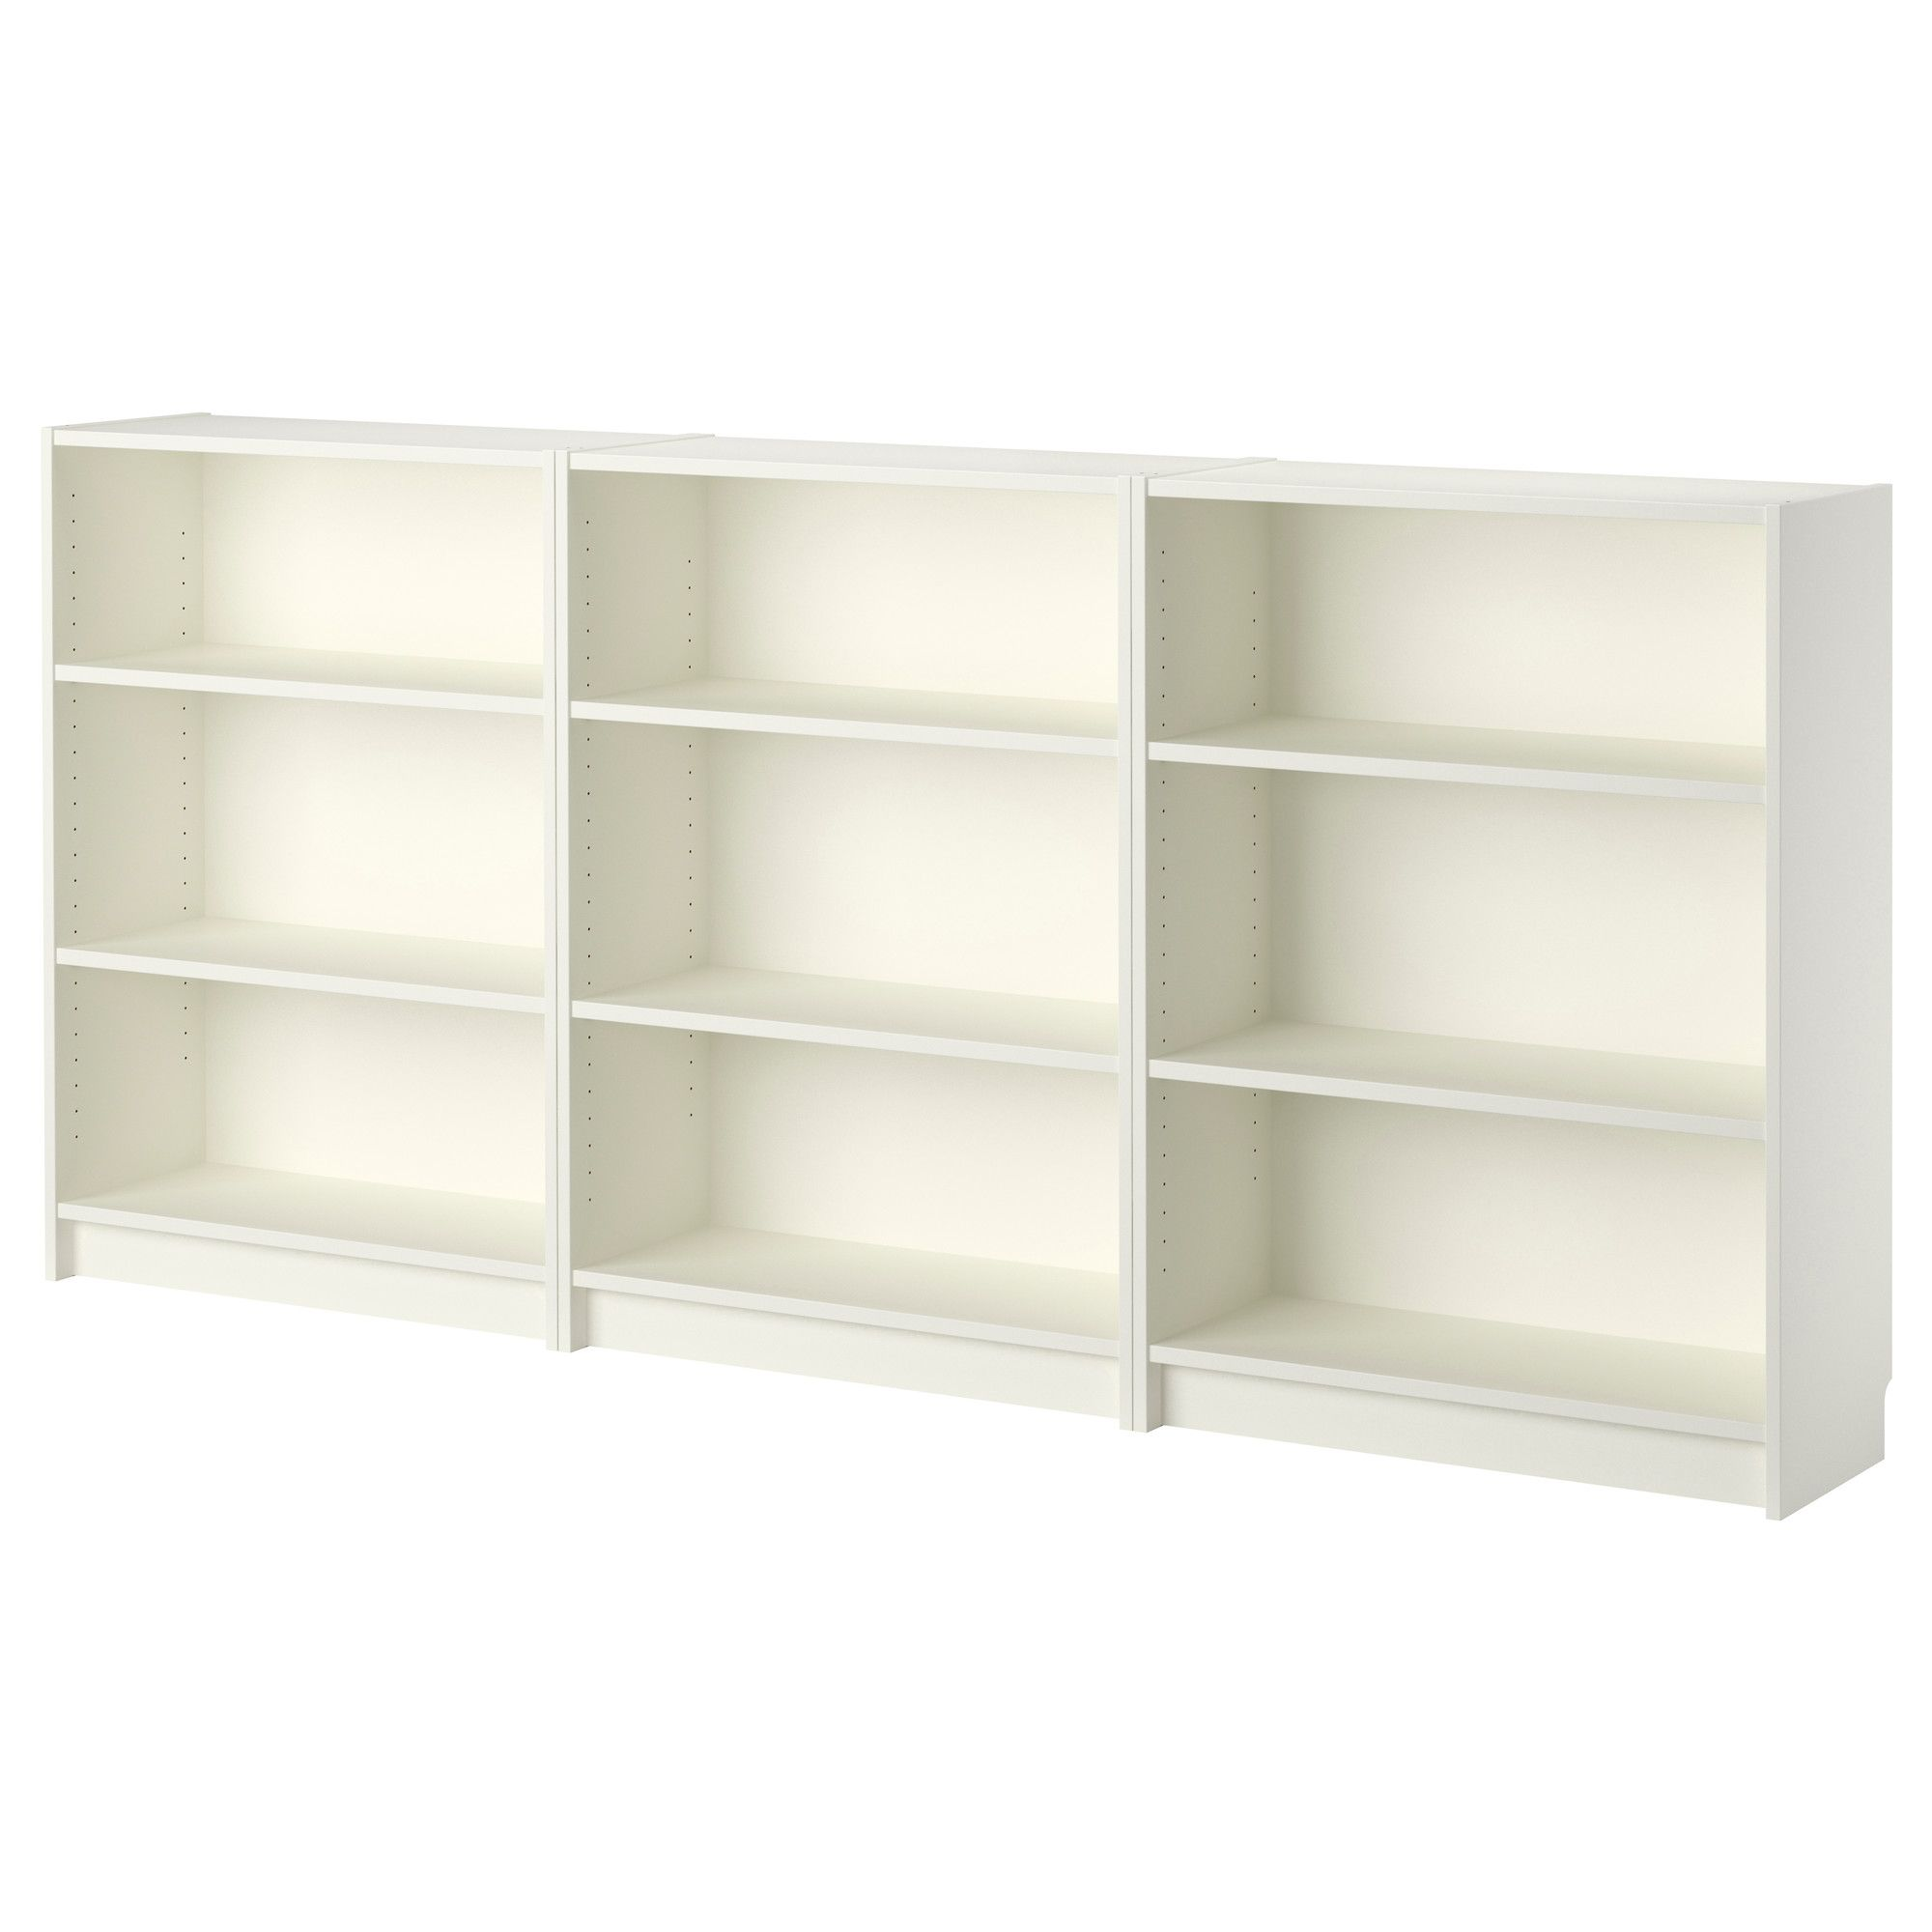 Billy Bookcase Ikea Canada Billy Bookcase White The Practically Ideal Classroom